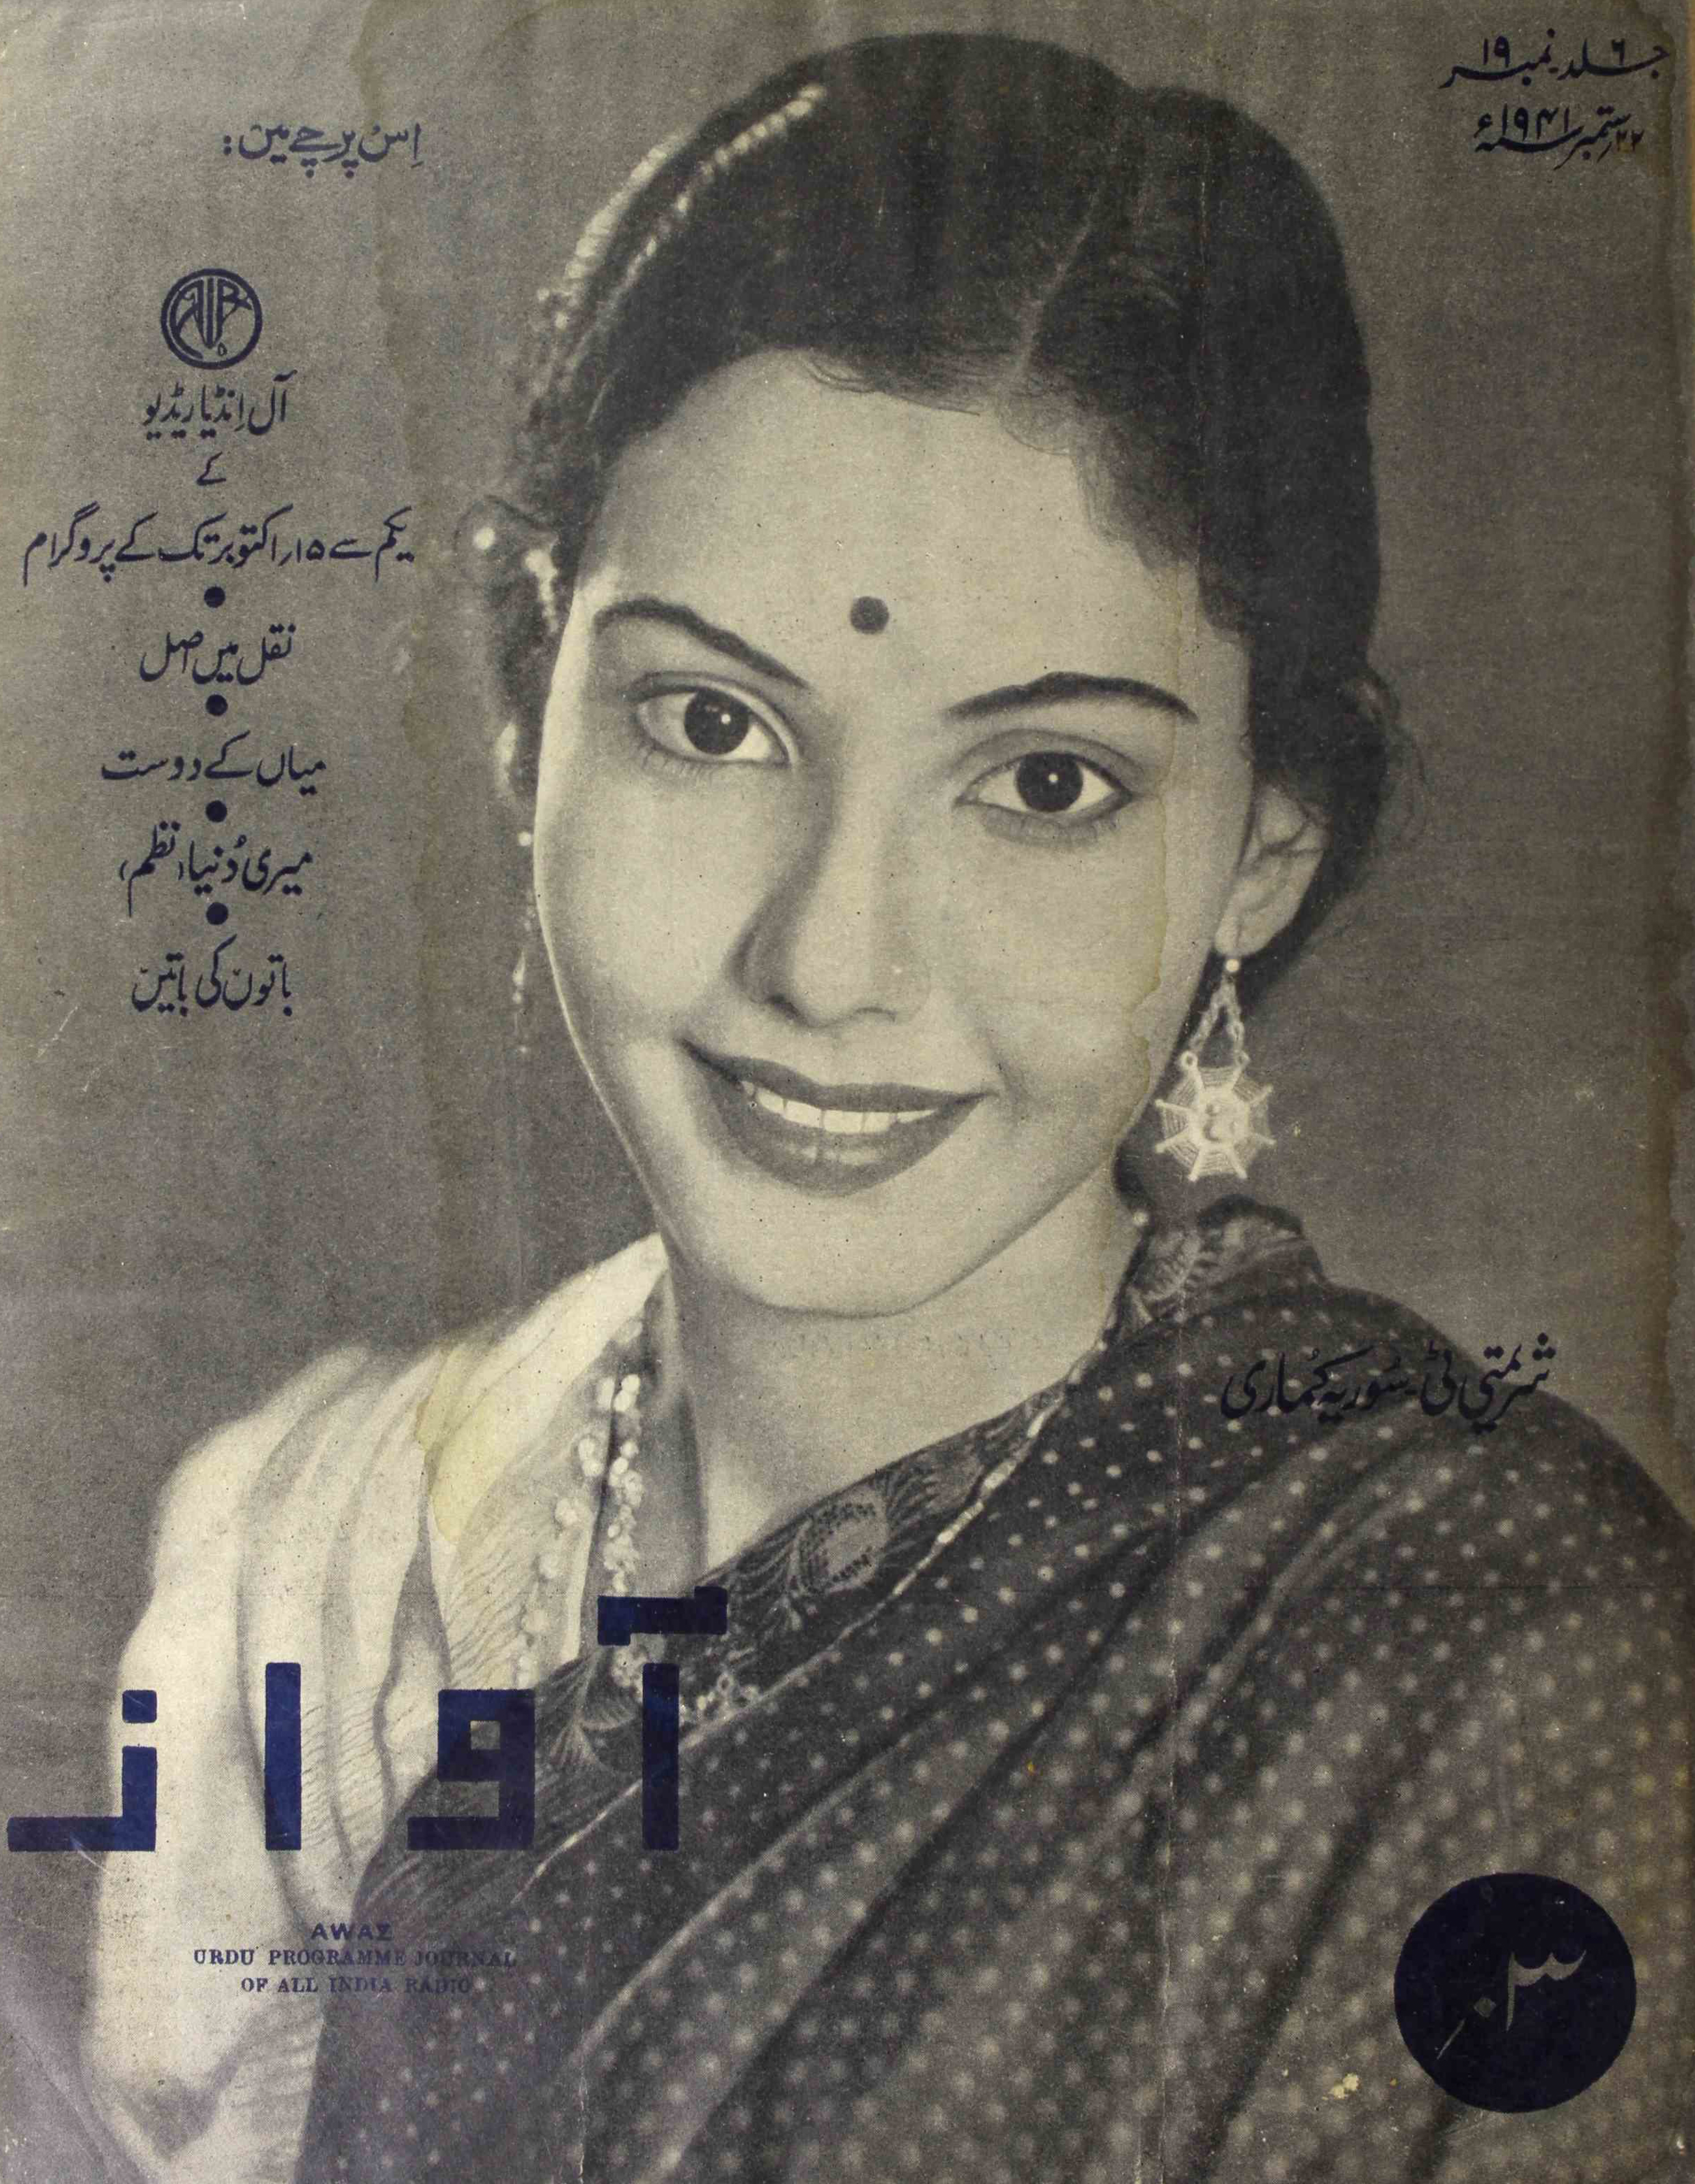 Awaz Jild 6 No 19 September 1941